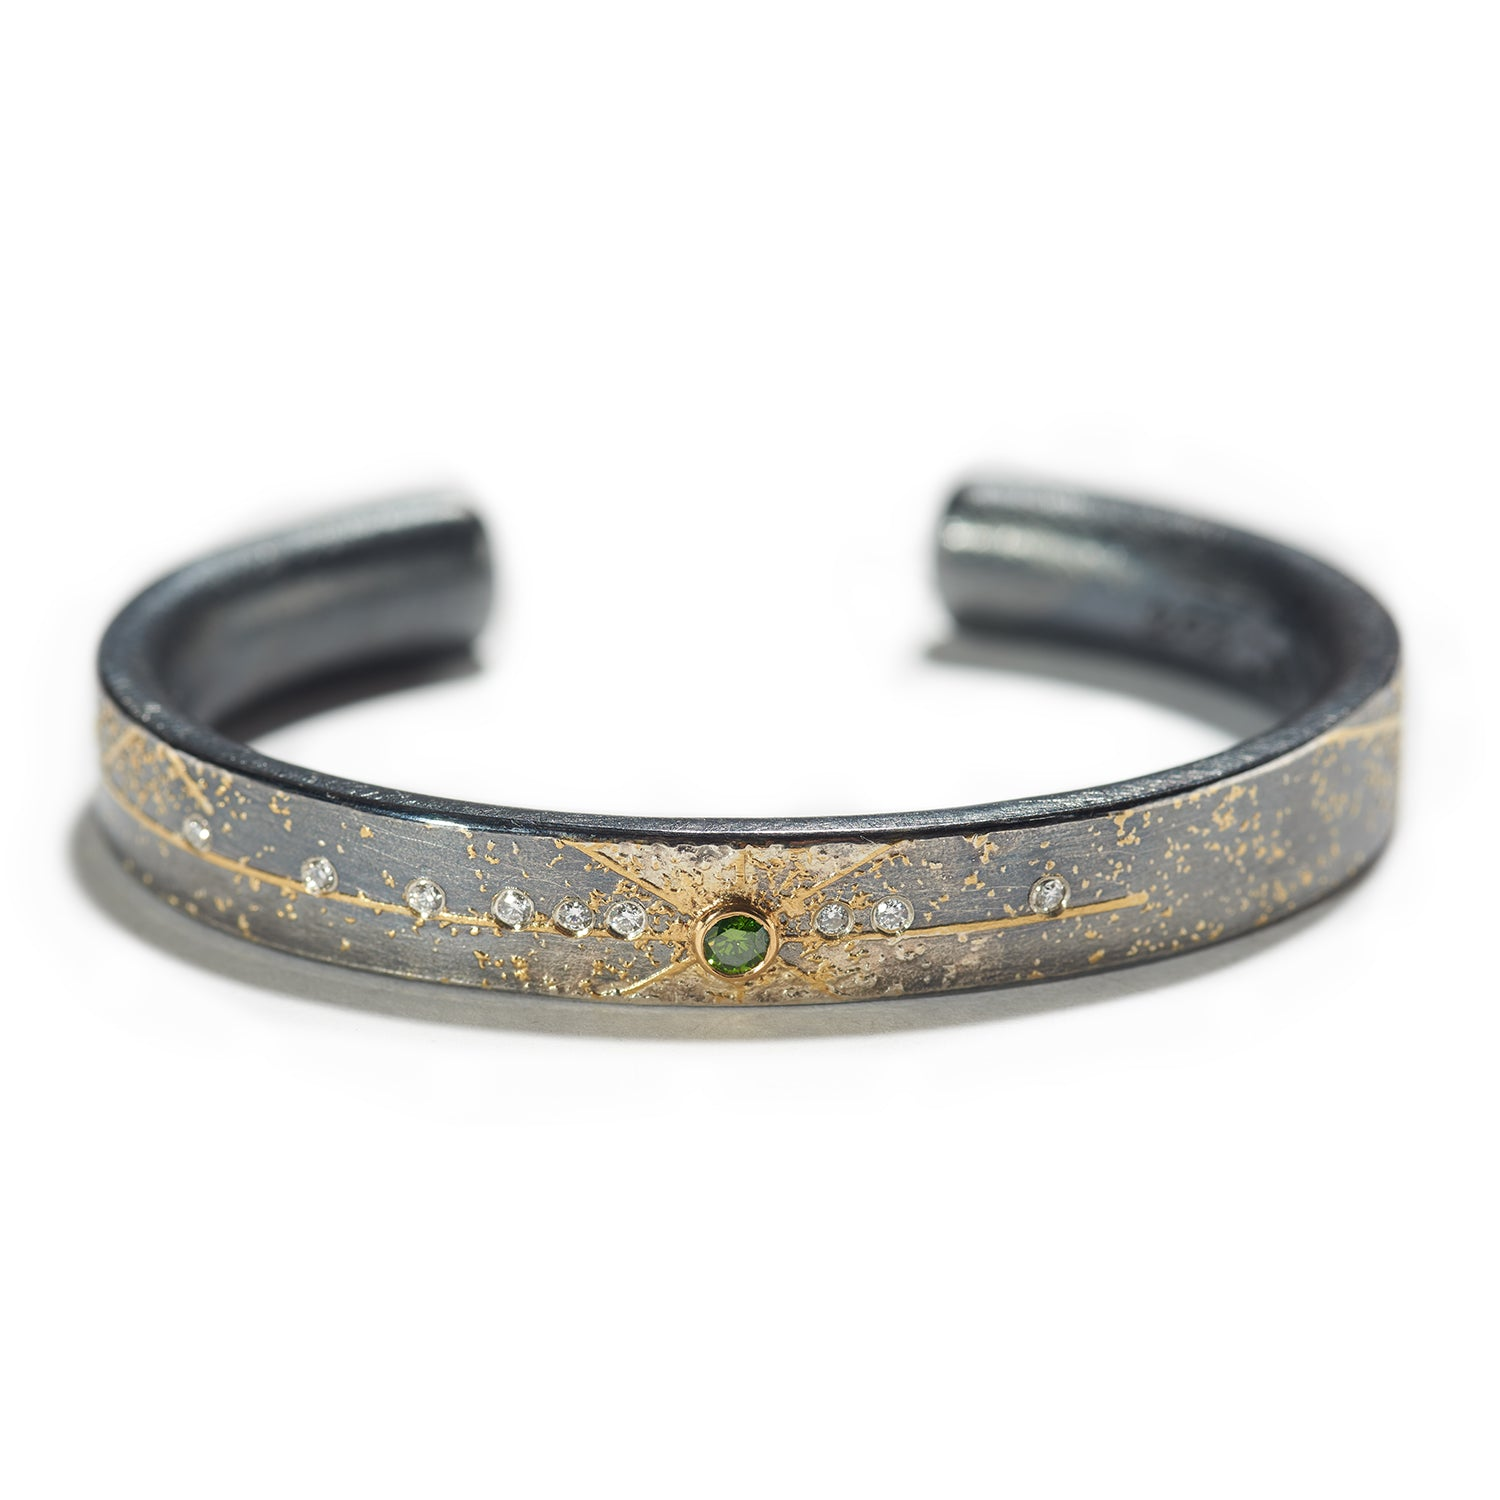 Green Diamond Cuff Bracelet